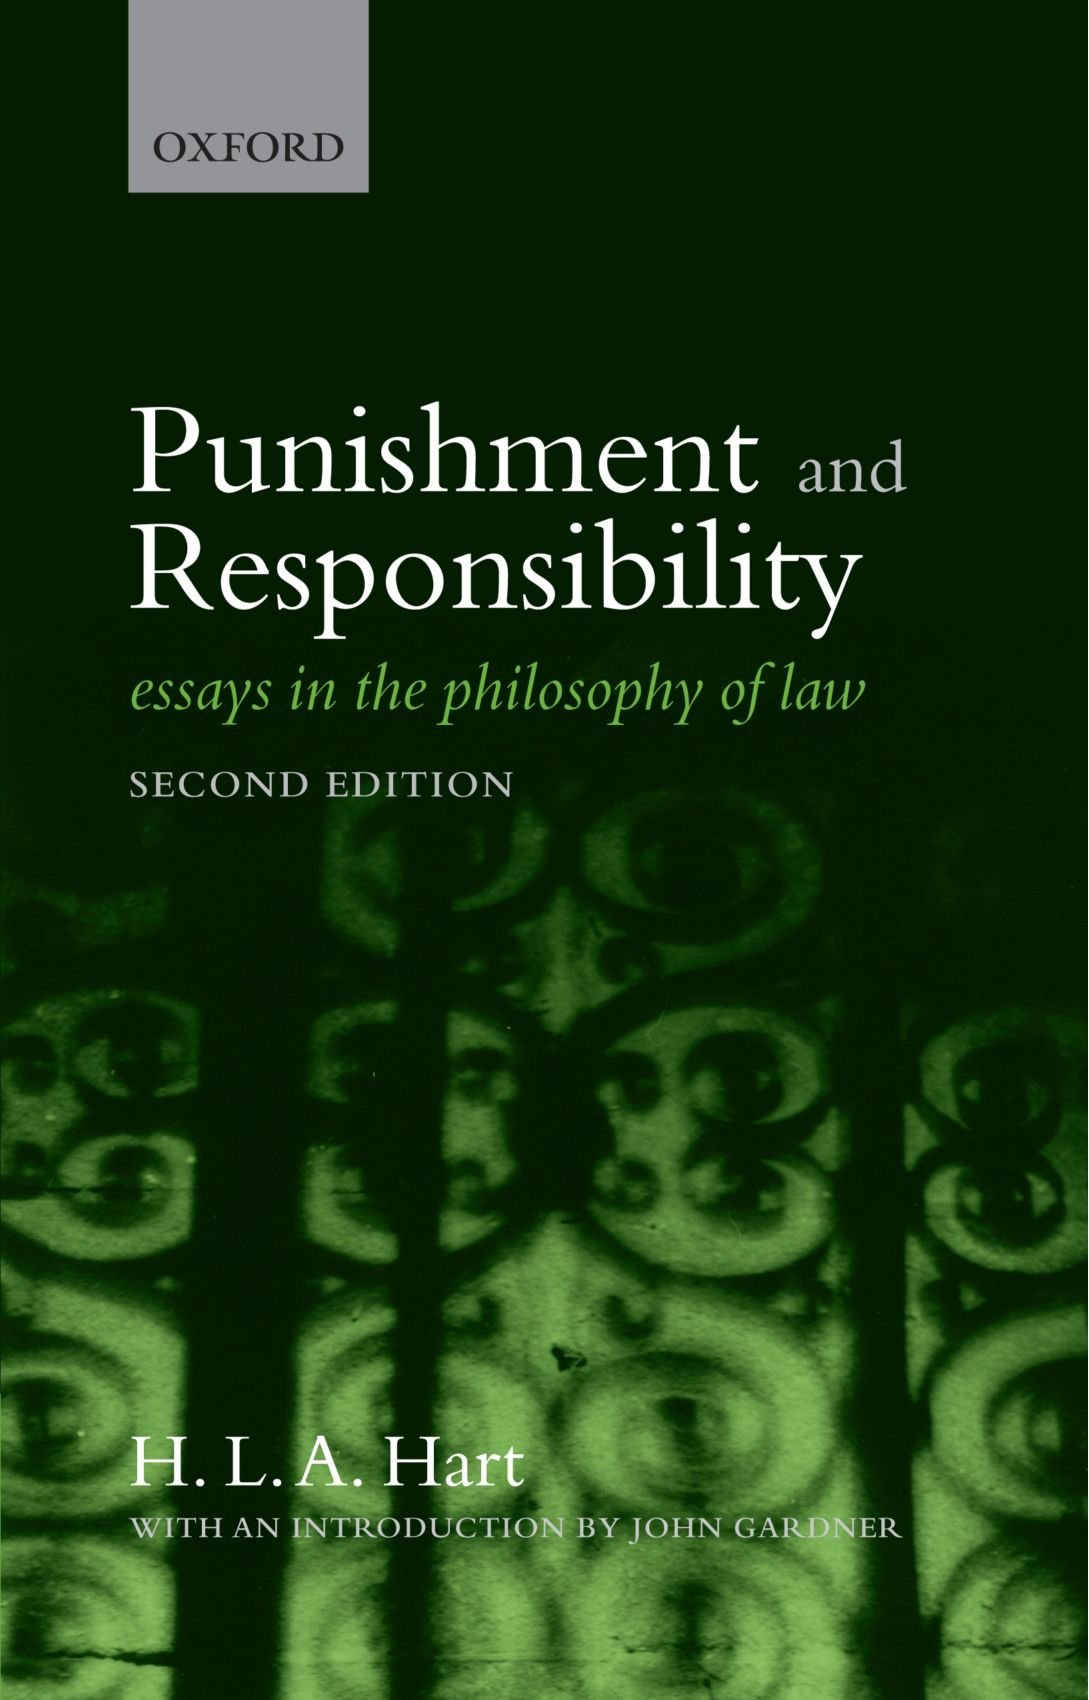 punishment and responsibility essays in the philosophy of law punishment and responsibility essays in the philosophy of law co uk h l a hart 9780199534784 books